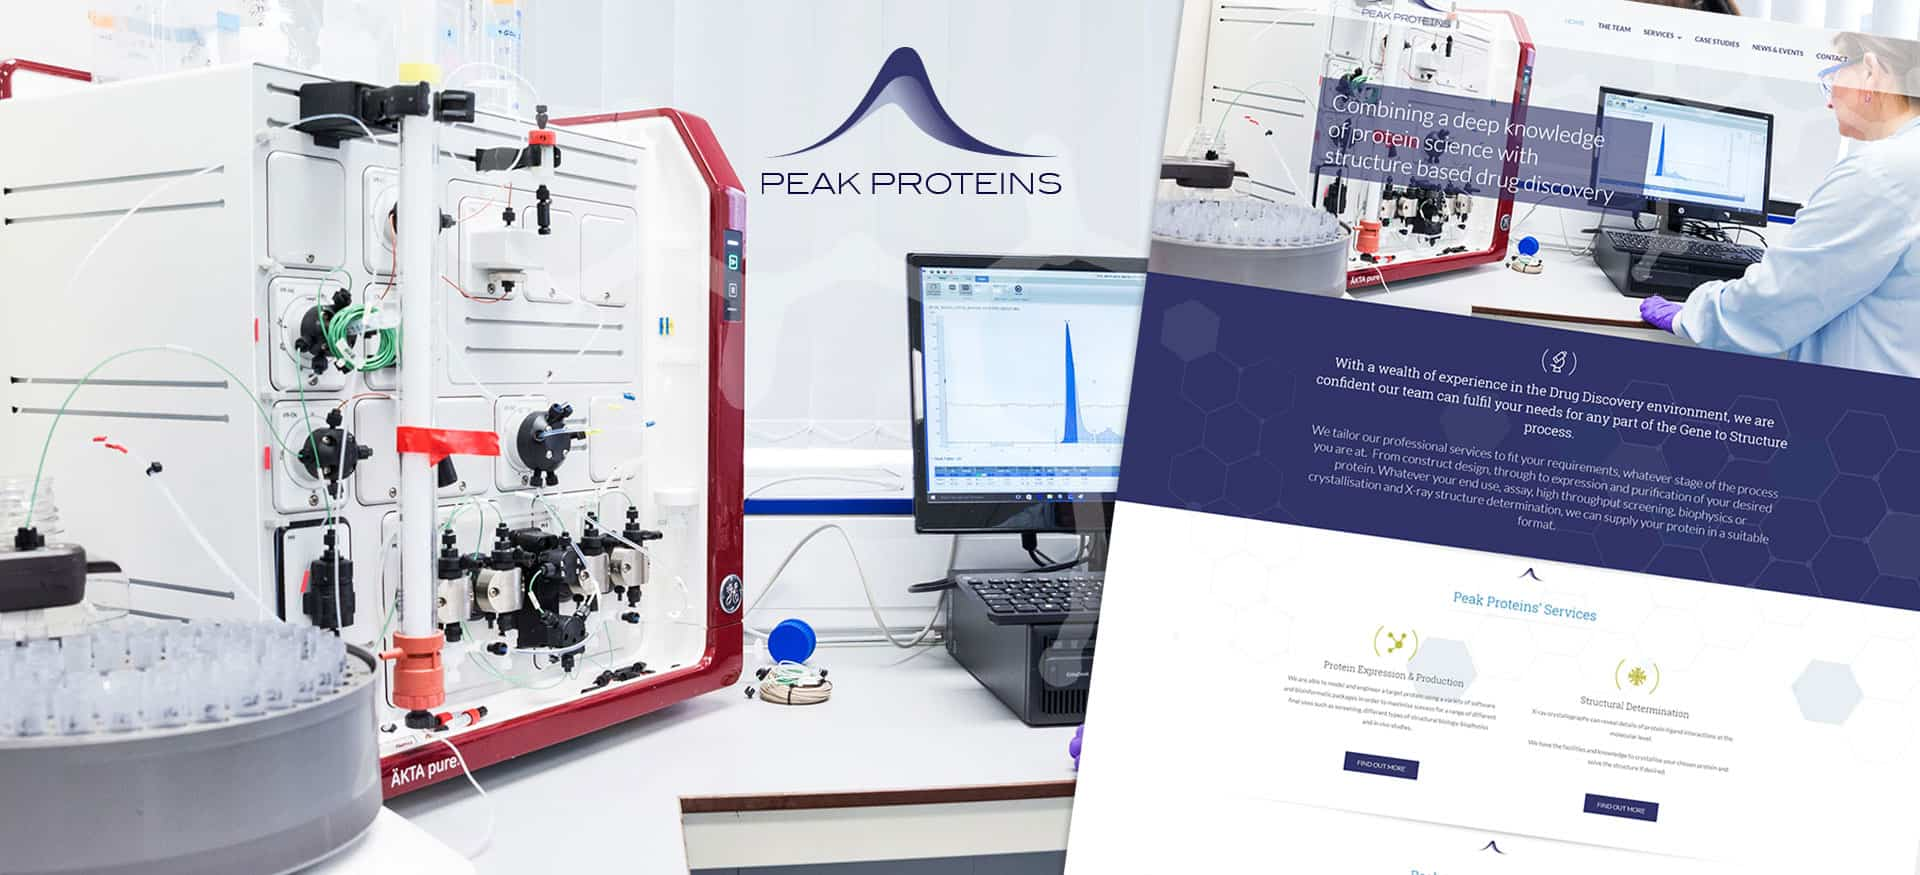 Peak Proteins - BioHub WordPress Website Design and Build